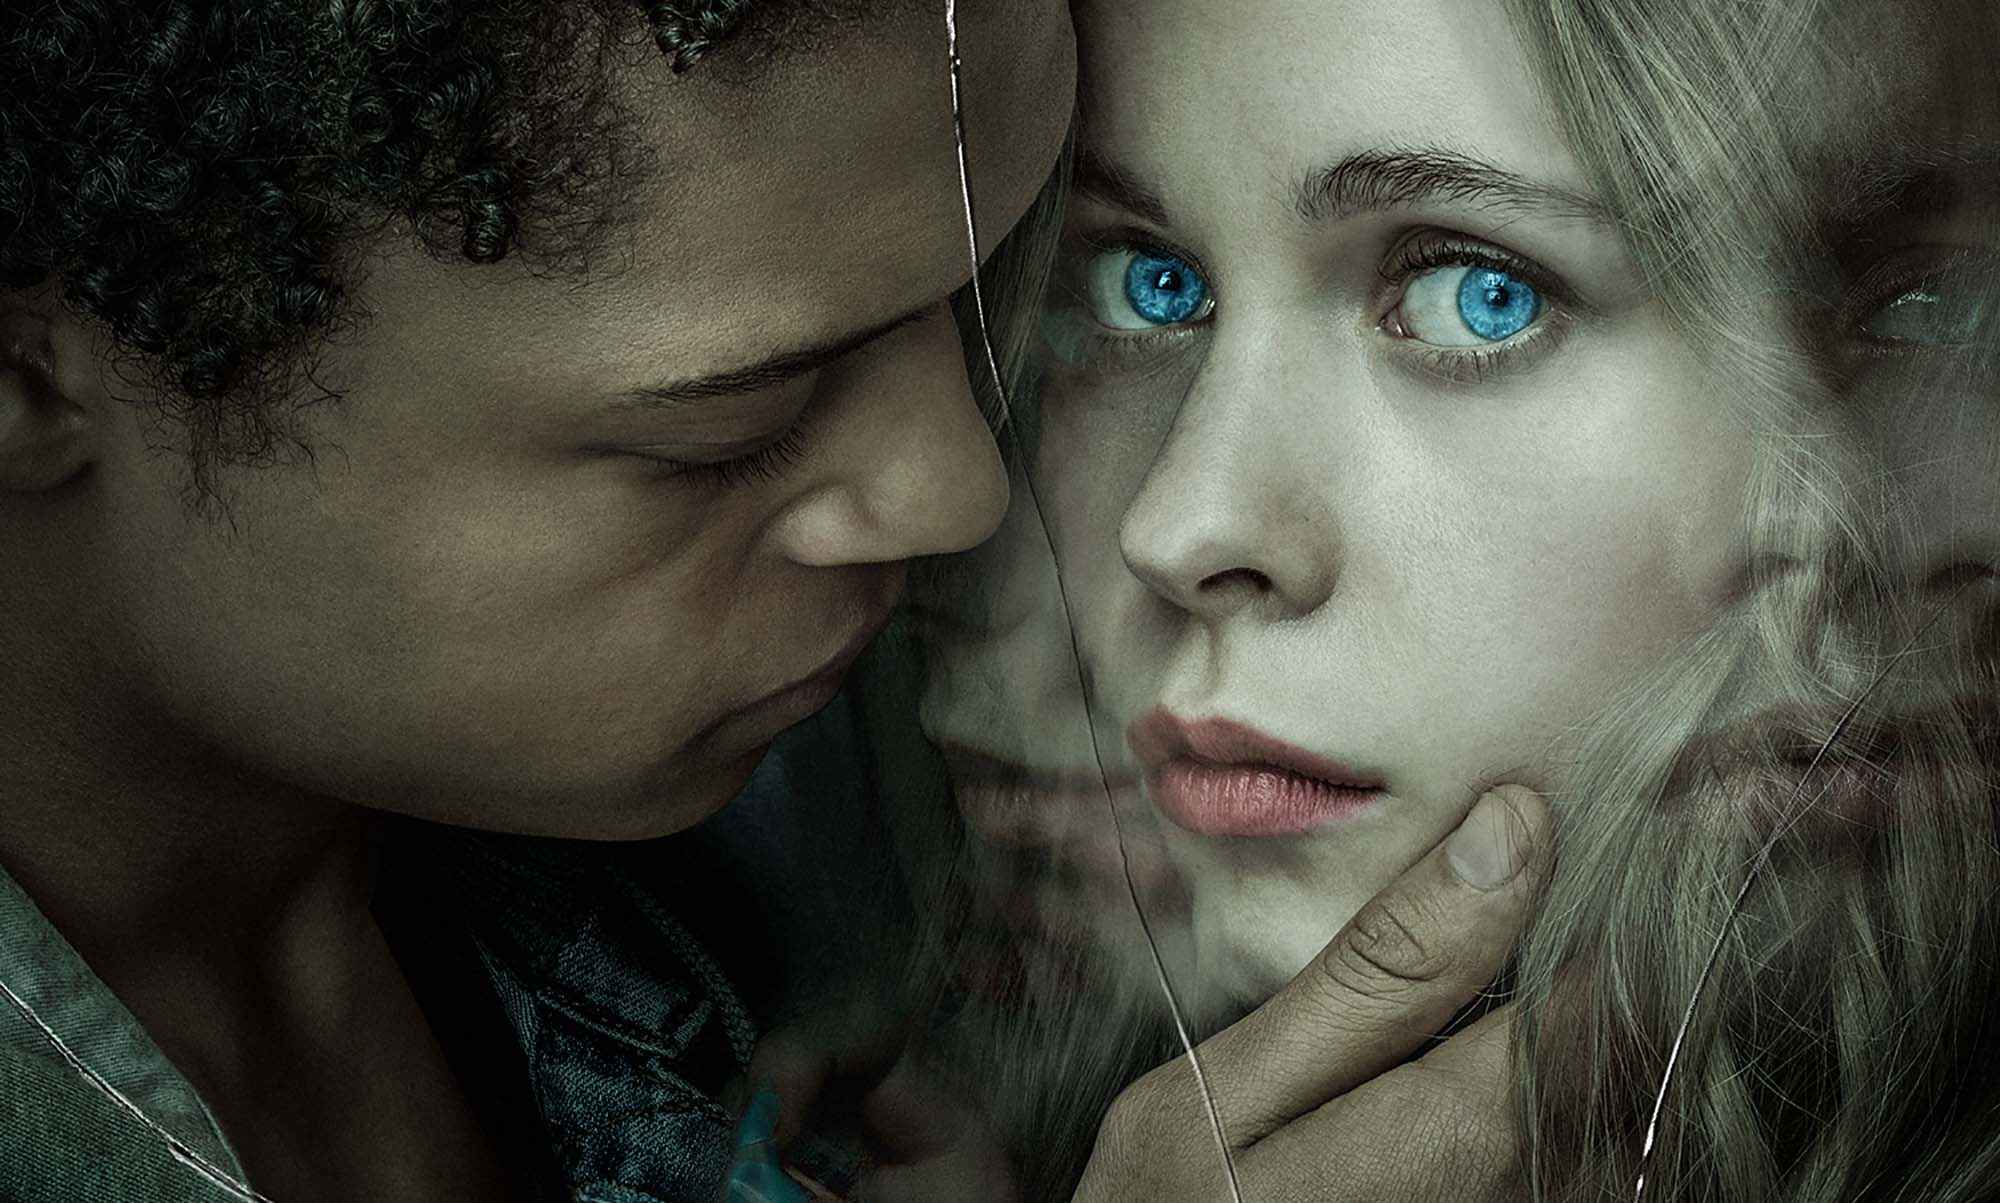 In 'The Innocents' teenagers run away from their families to be together – but they're derailed by an extraordinary discovery: one's ability to shape-shift.